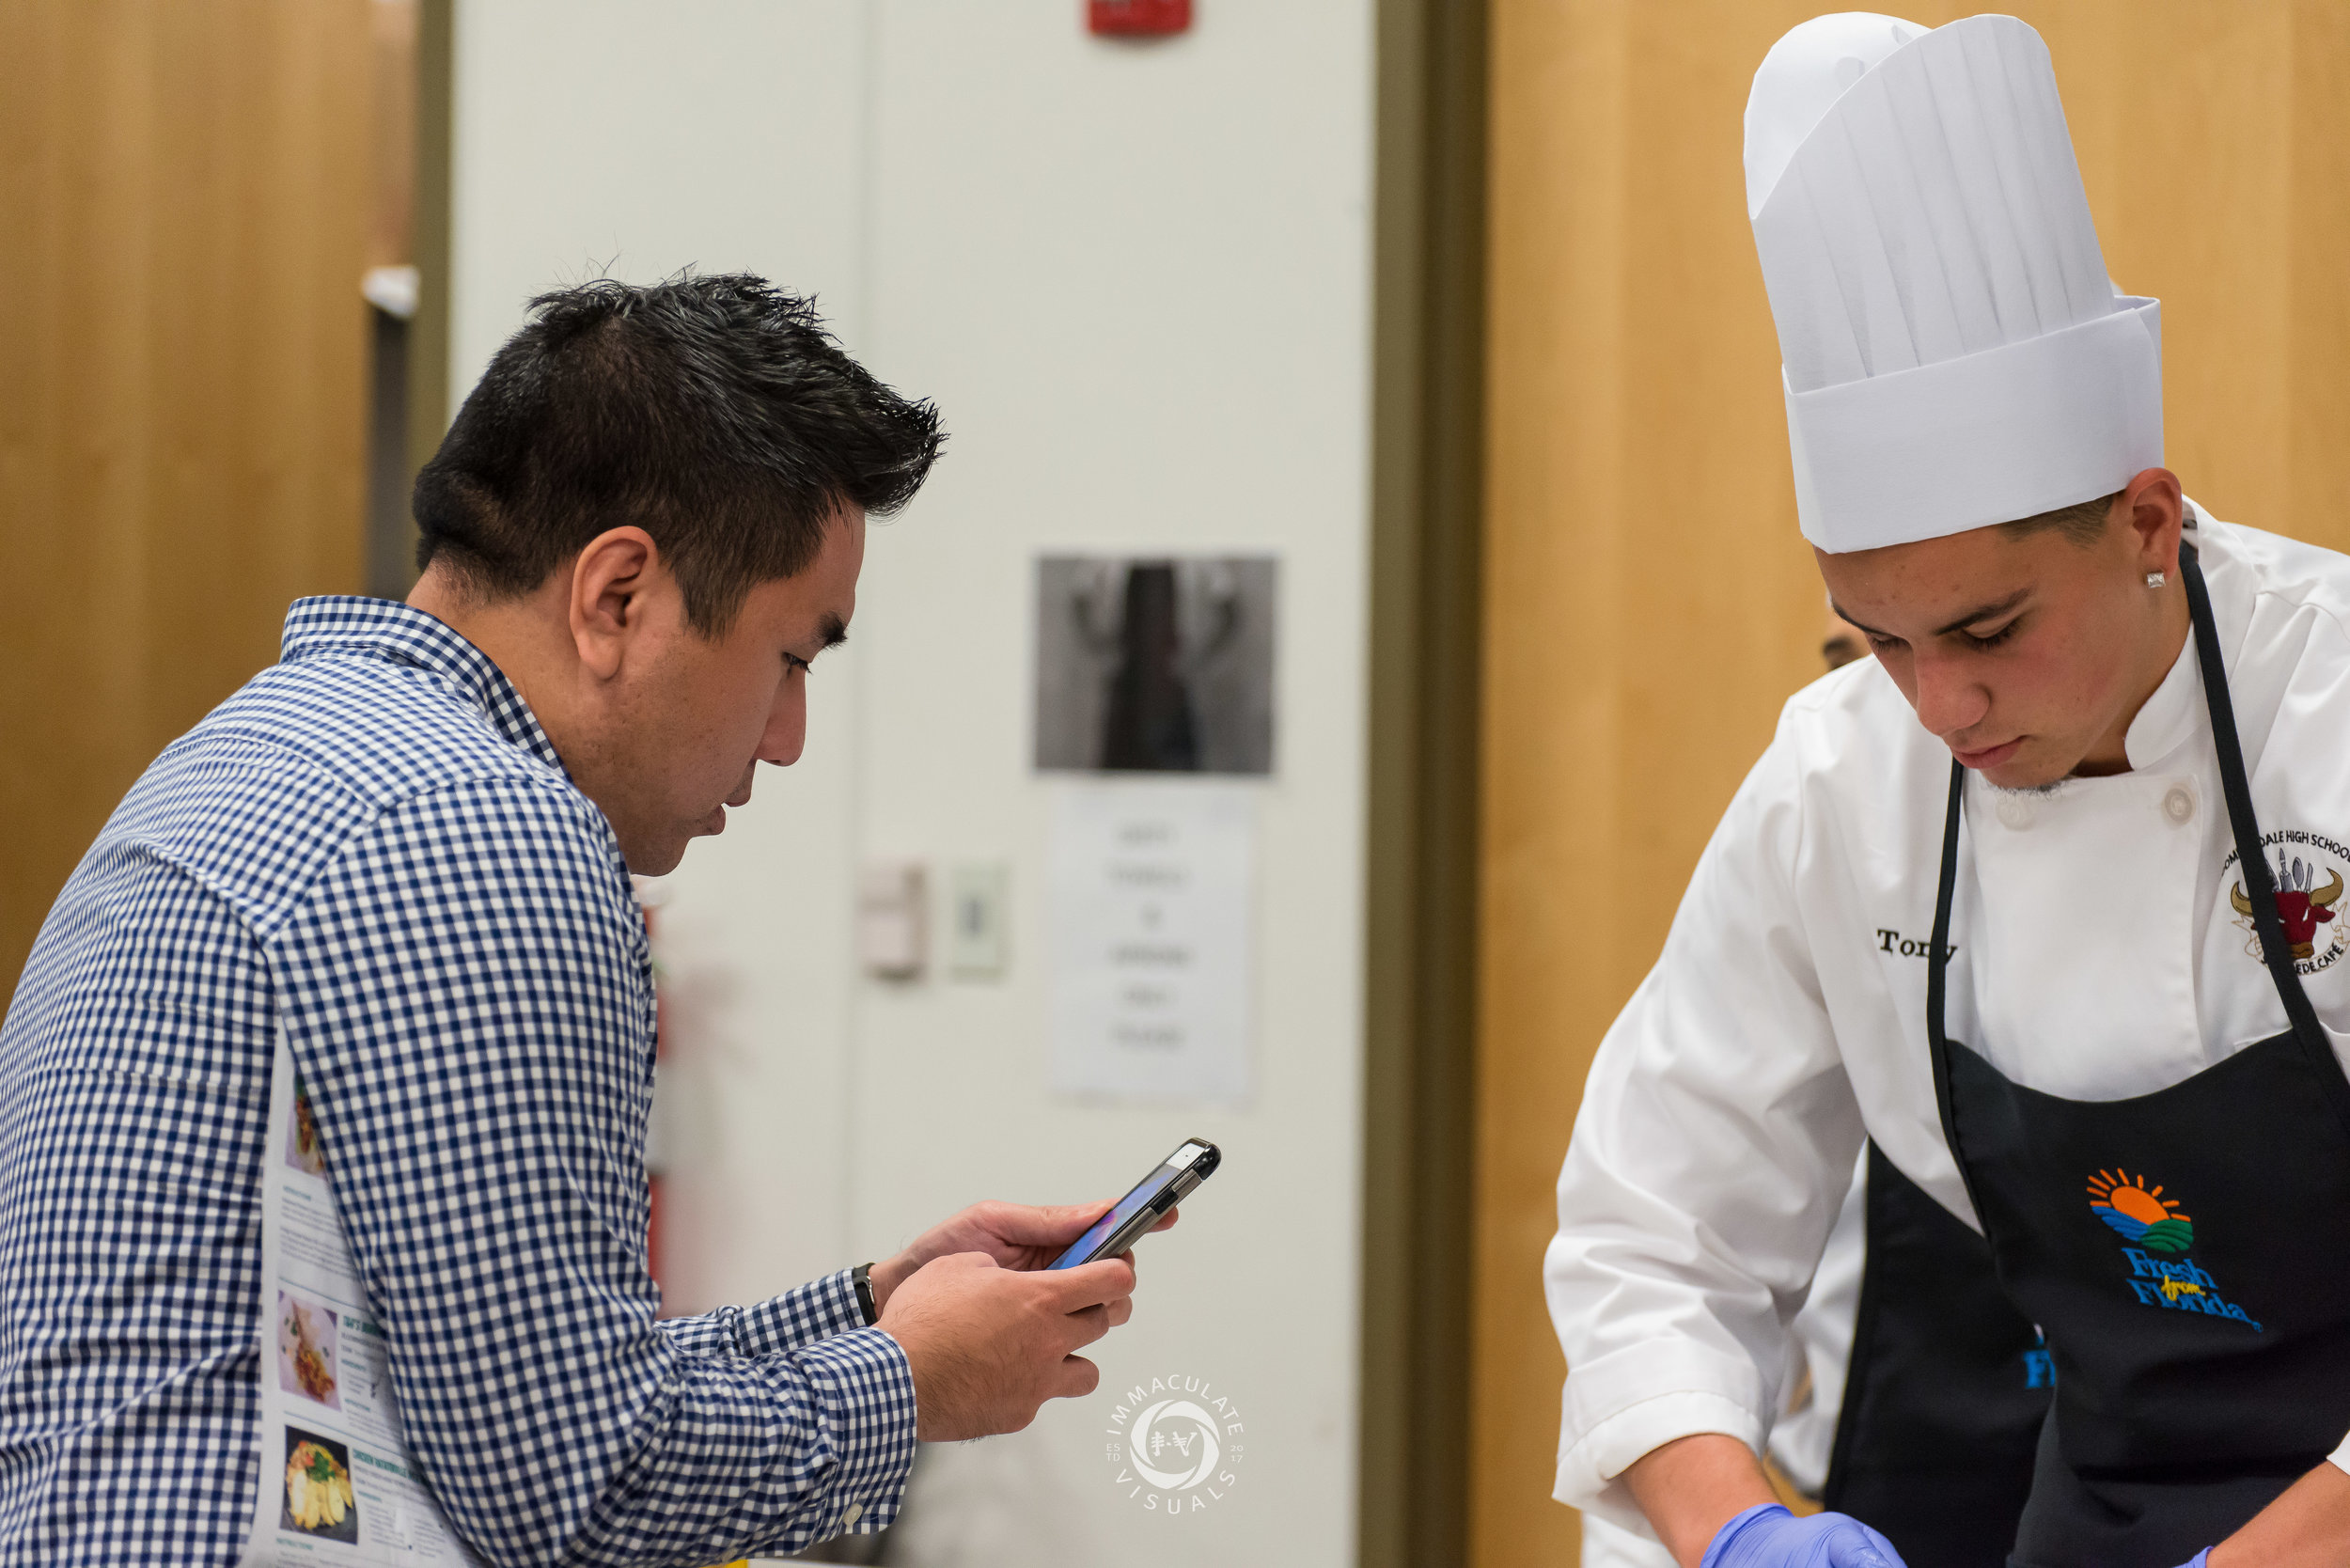 Events - CookOff-7638.jpg